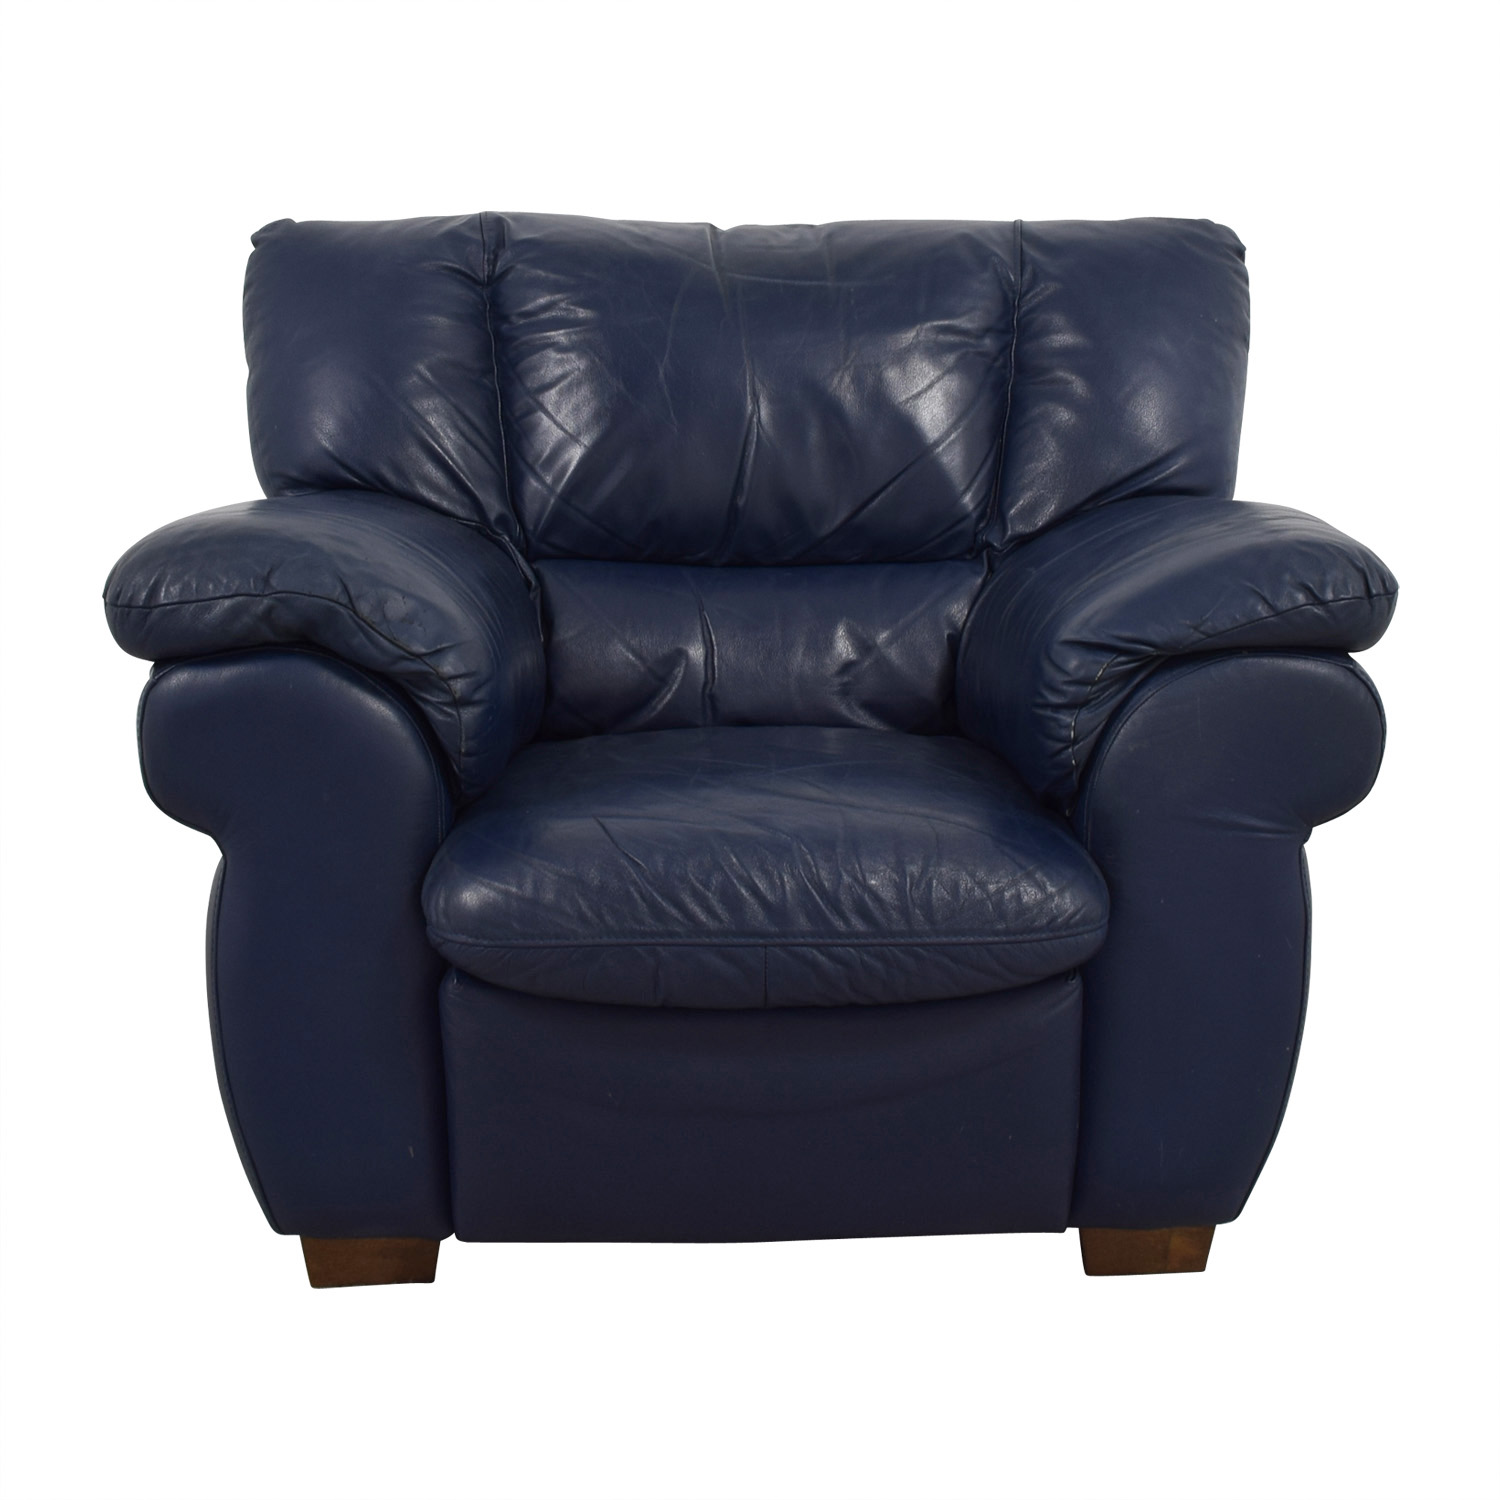 Macys Navy Blue Leather Sofa Chair Chairs